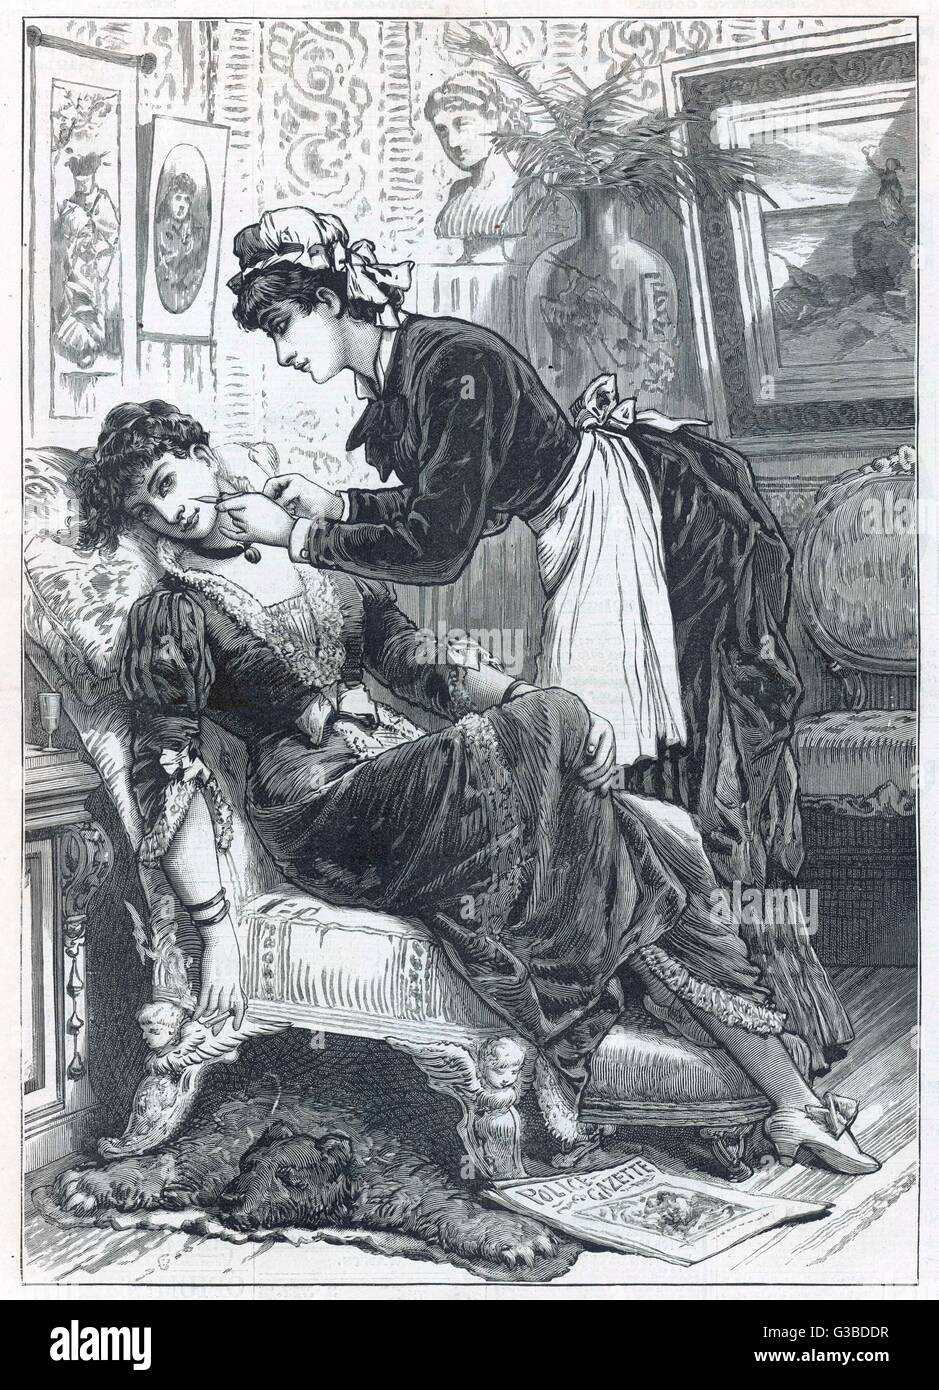 A maid uses a hypodermic  needle to put colour in  her mistress's cheeks.       Date: 1886 - Stock Image